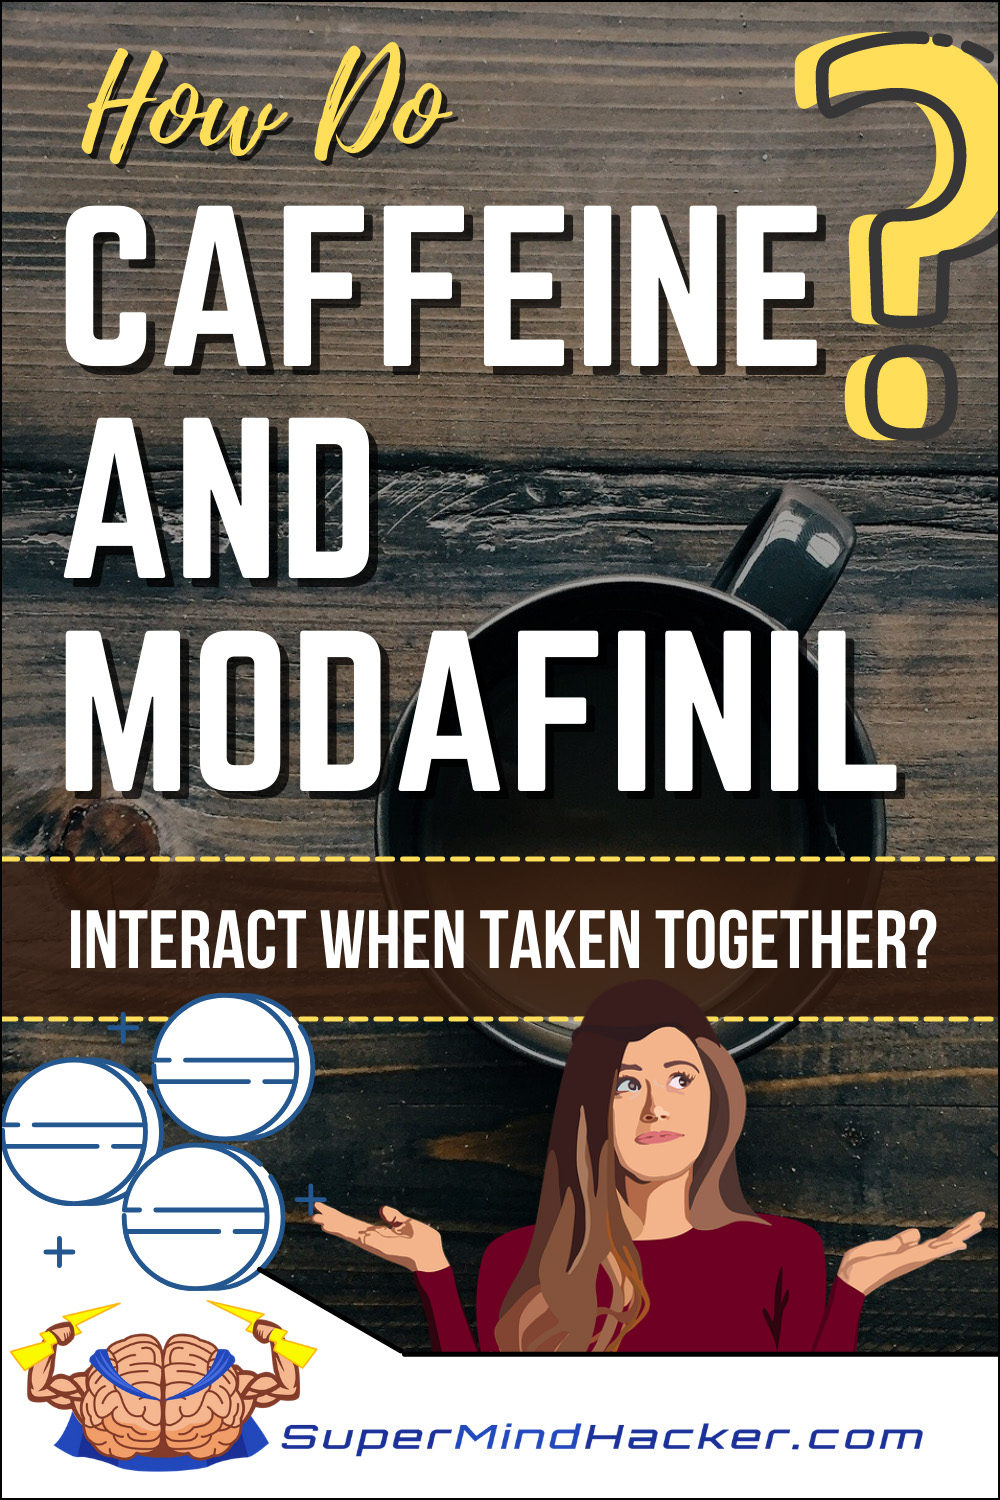 How Do Caffeine And Modafinil Interact When Taken Together?